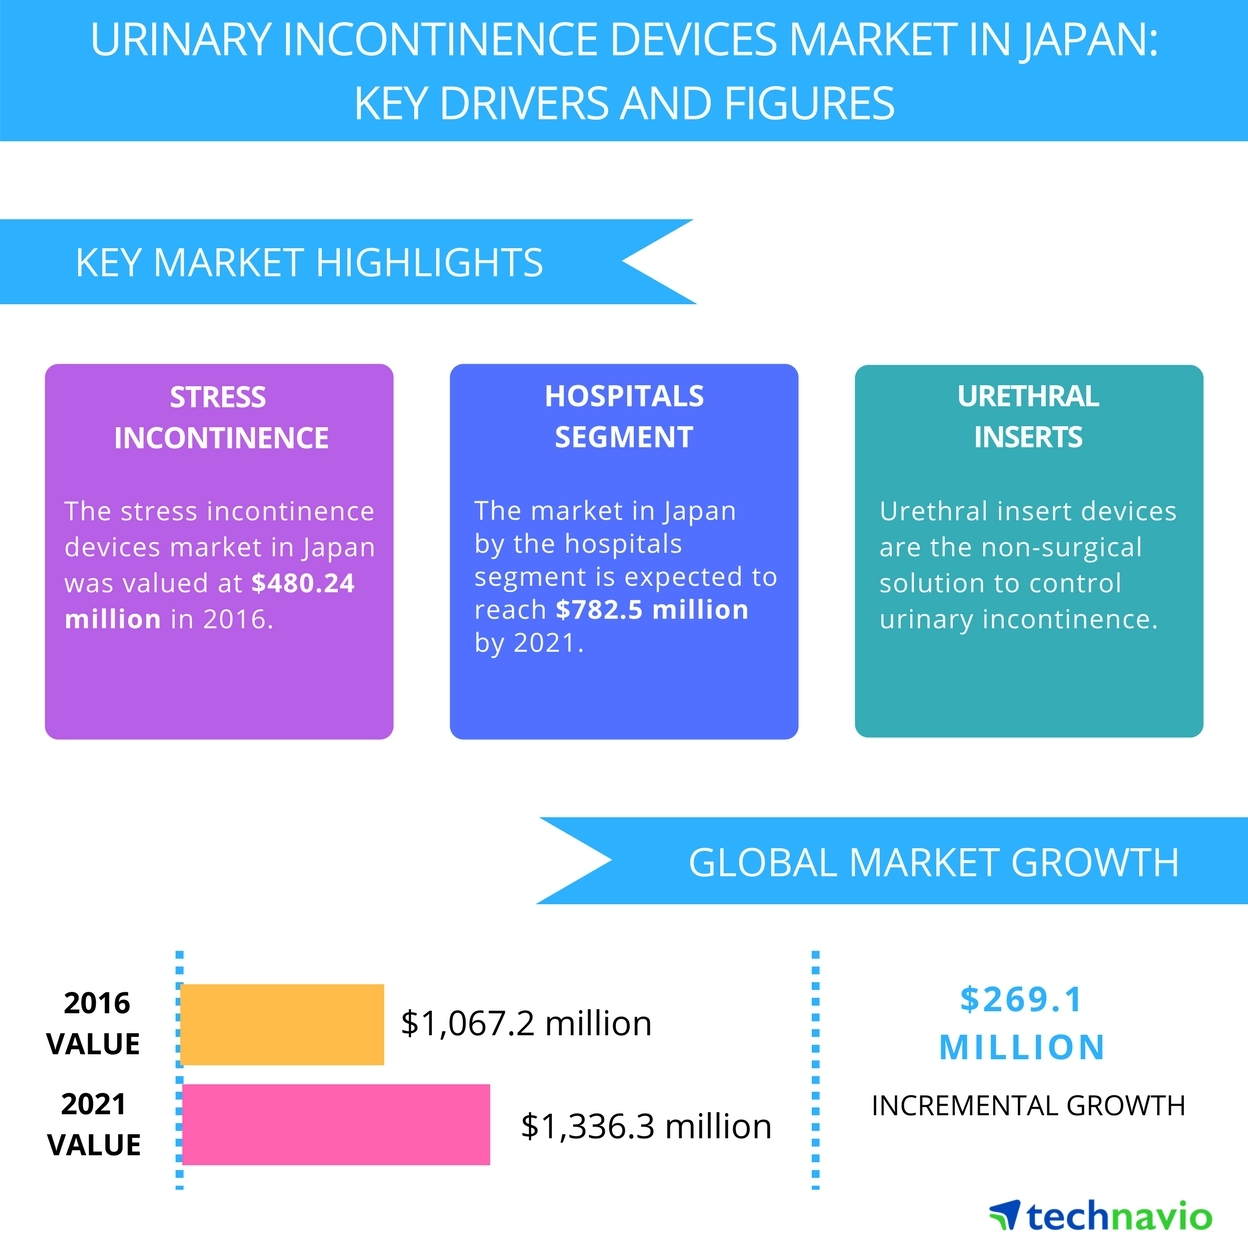 Urinary Incontinence Devices Market in Japan - Top 3 Drivers